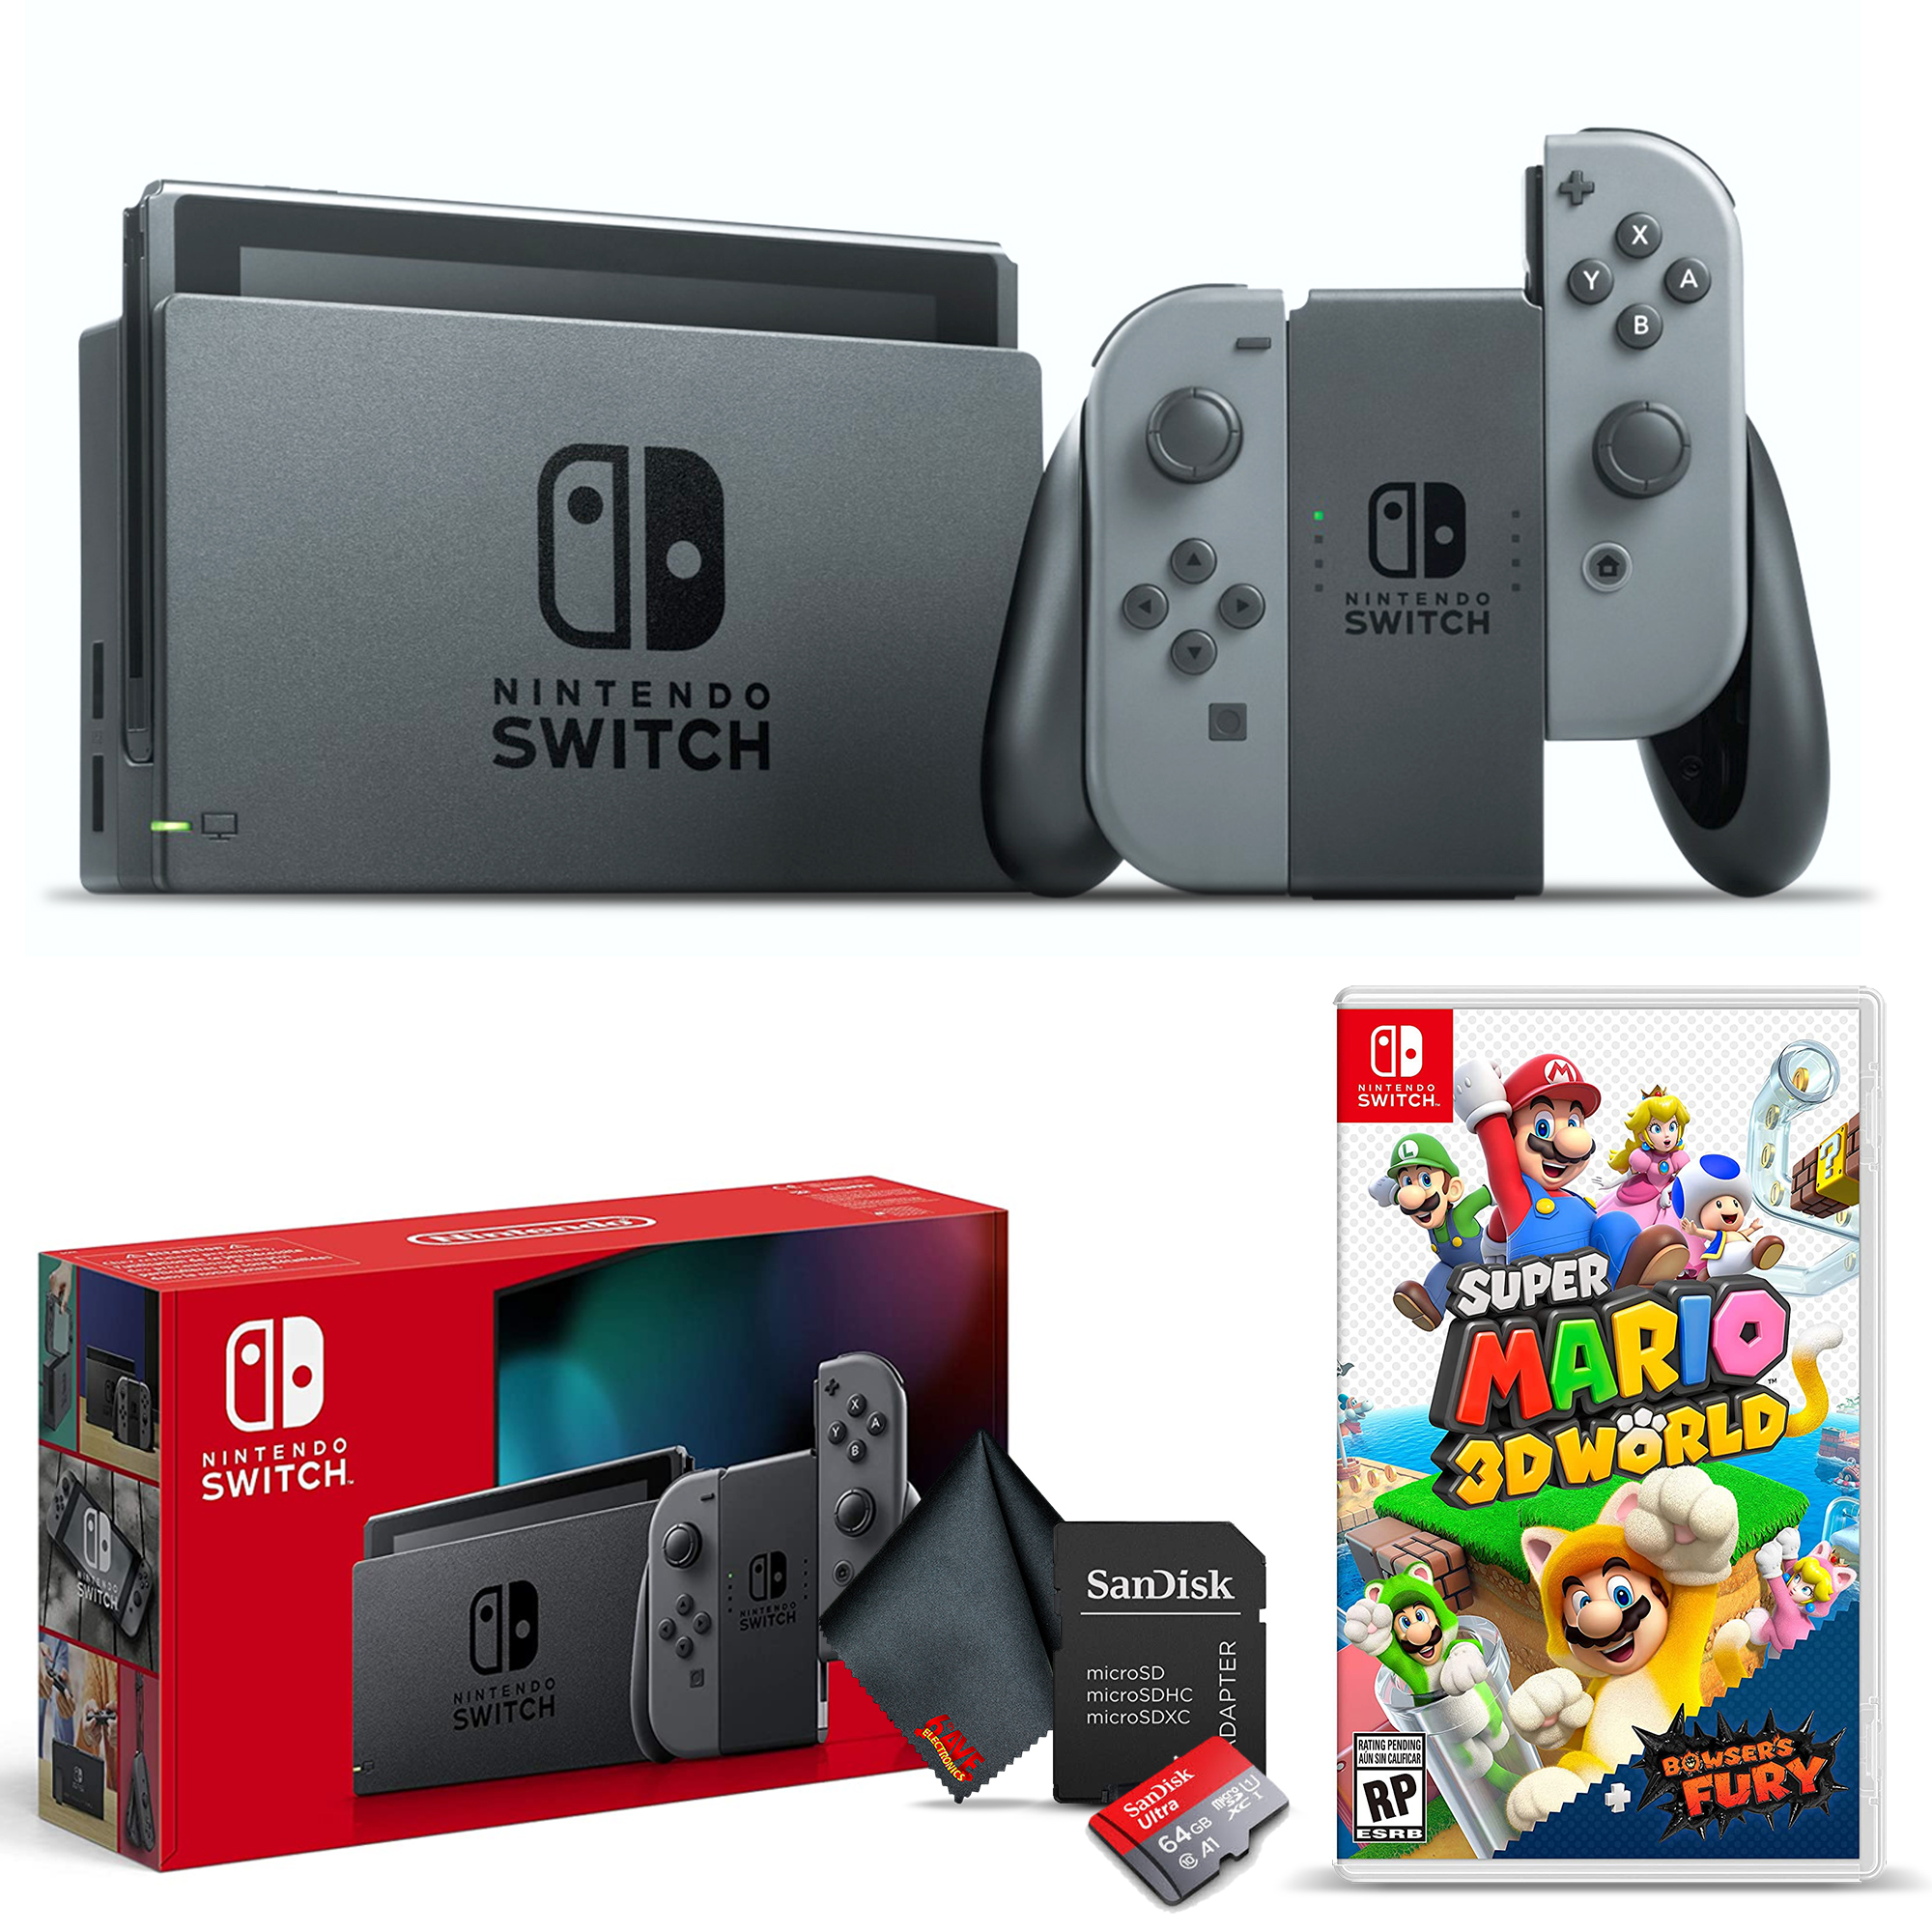 miniature 3 - Nintendo Switch Gaming Console Bundle with Super Mario 3D World + Bowser's Fury